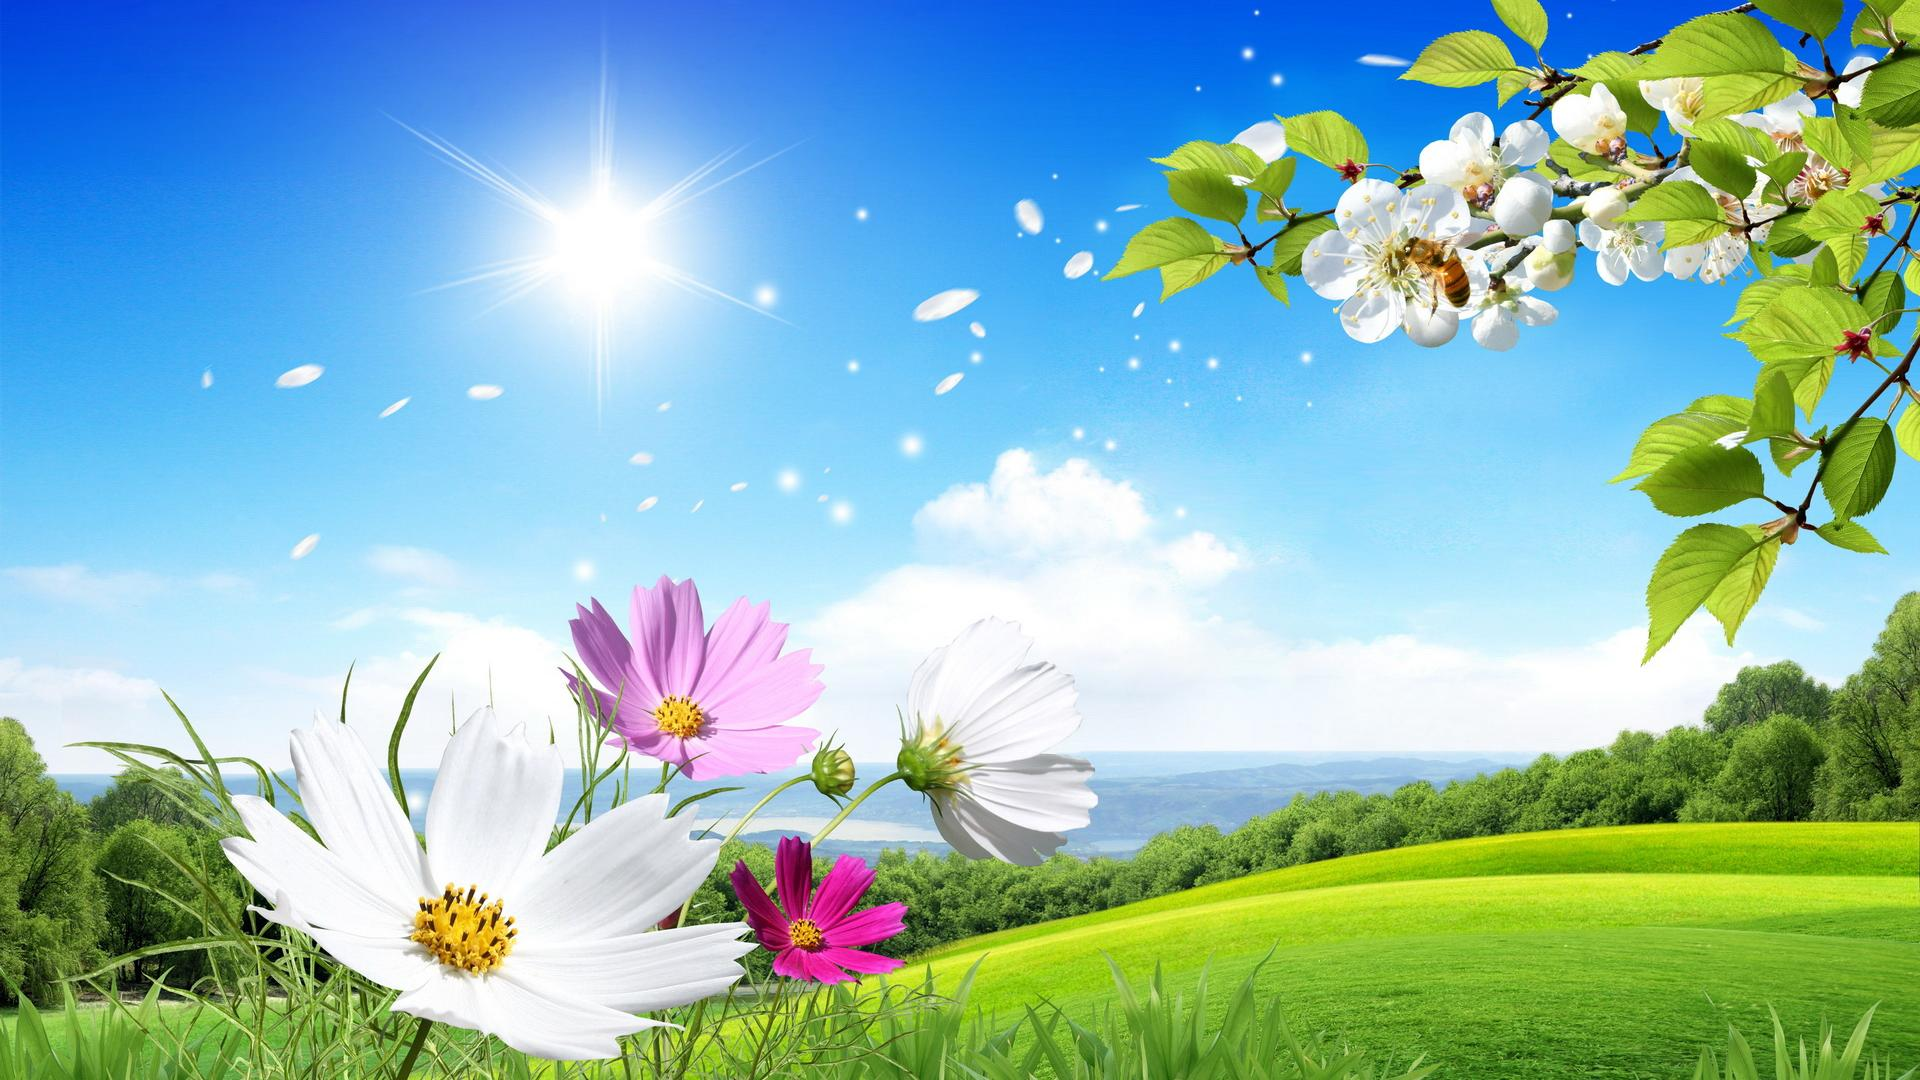 Background wallpaper flowers clip free library 1000+ images about Flowers on Pinterest | Beautiful, Summer ... clip free library